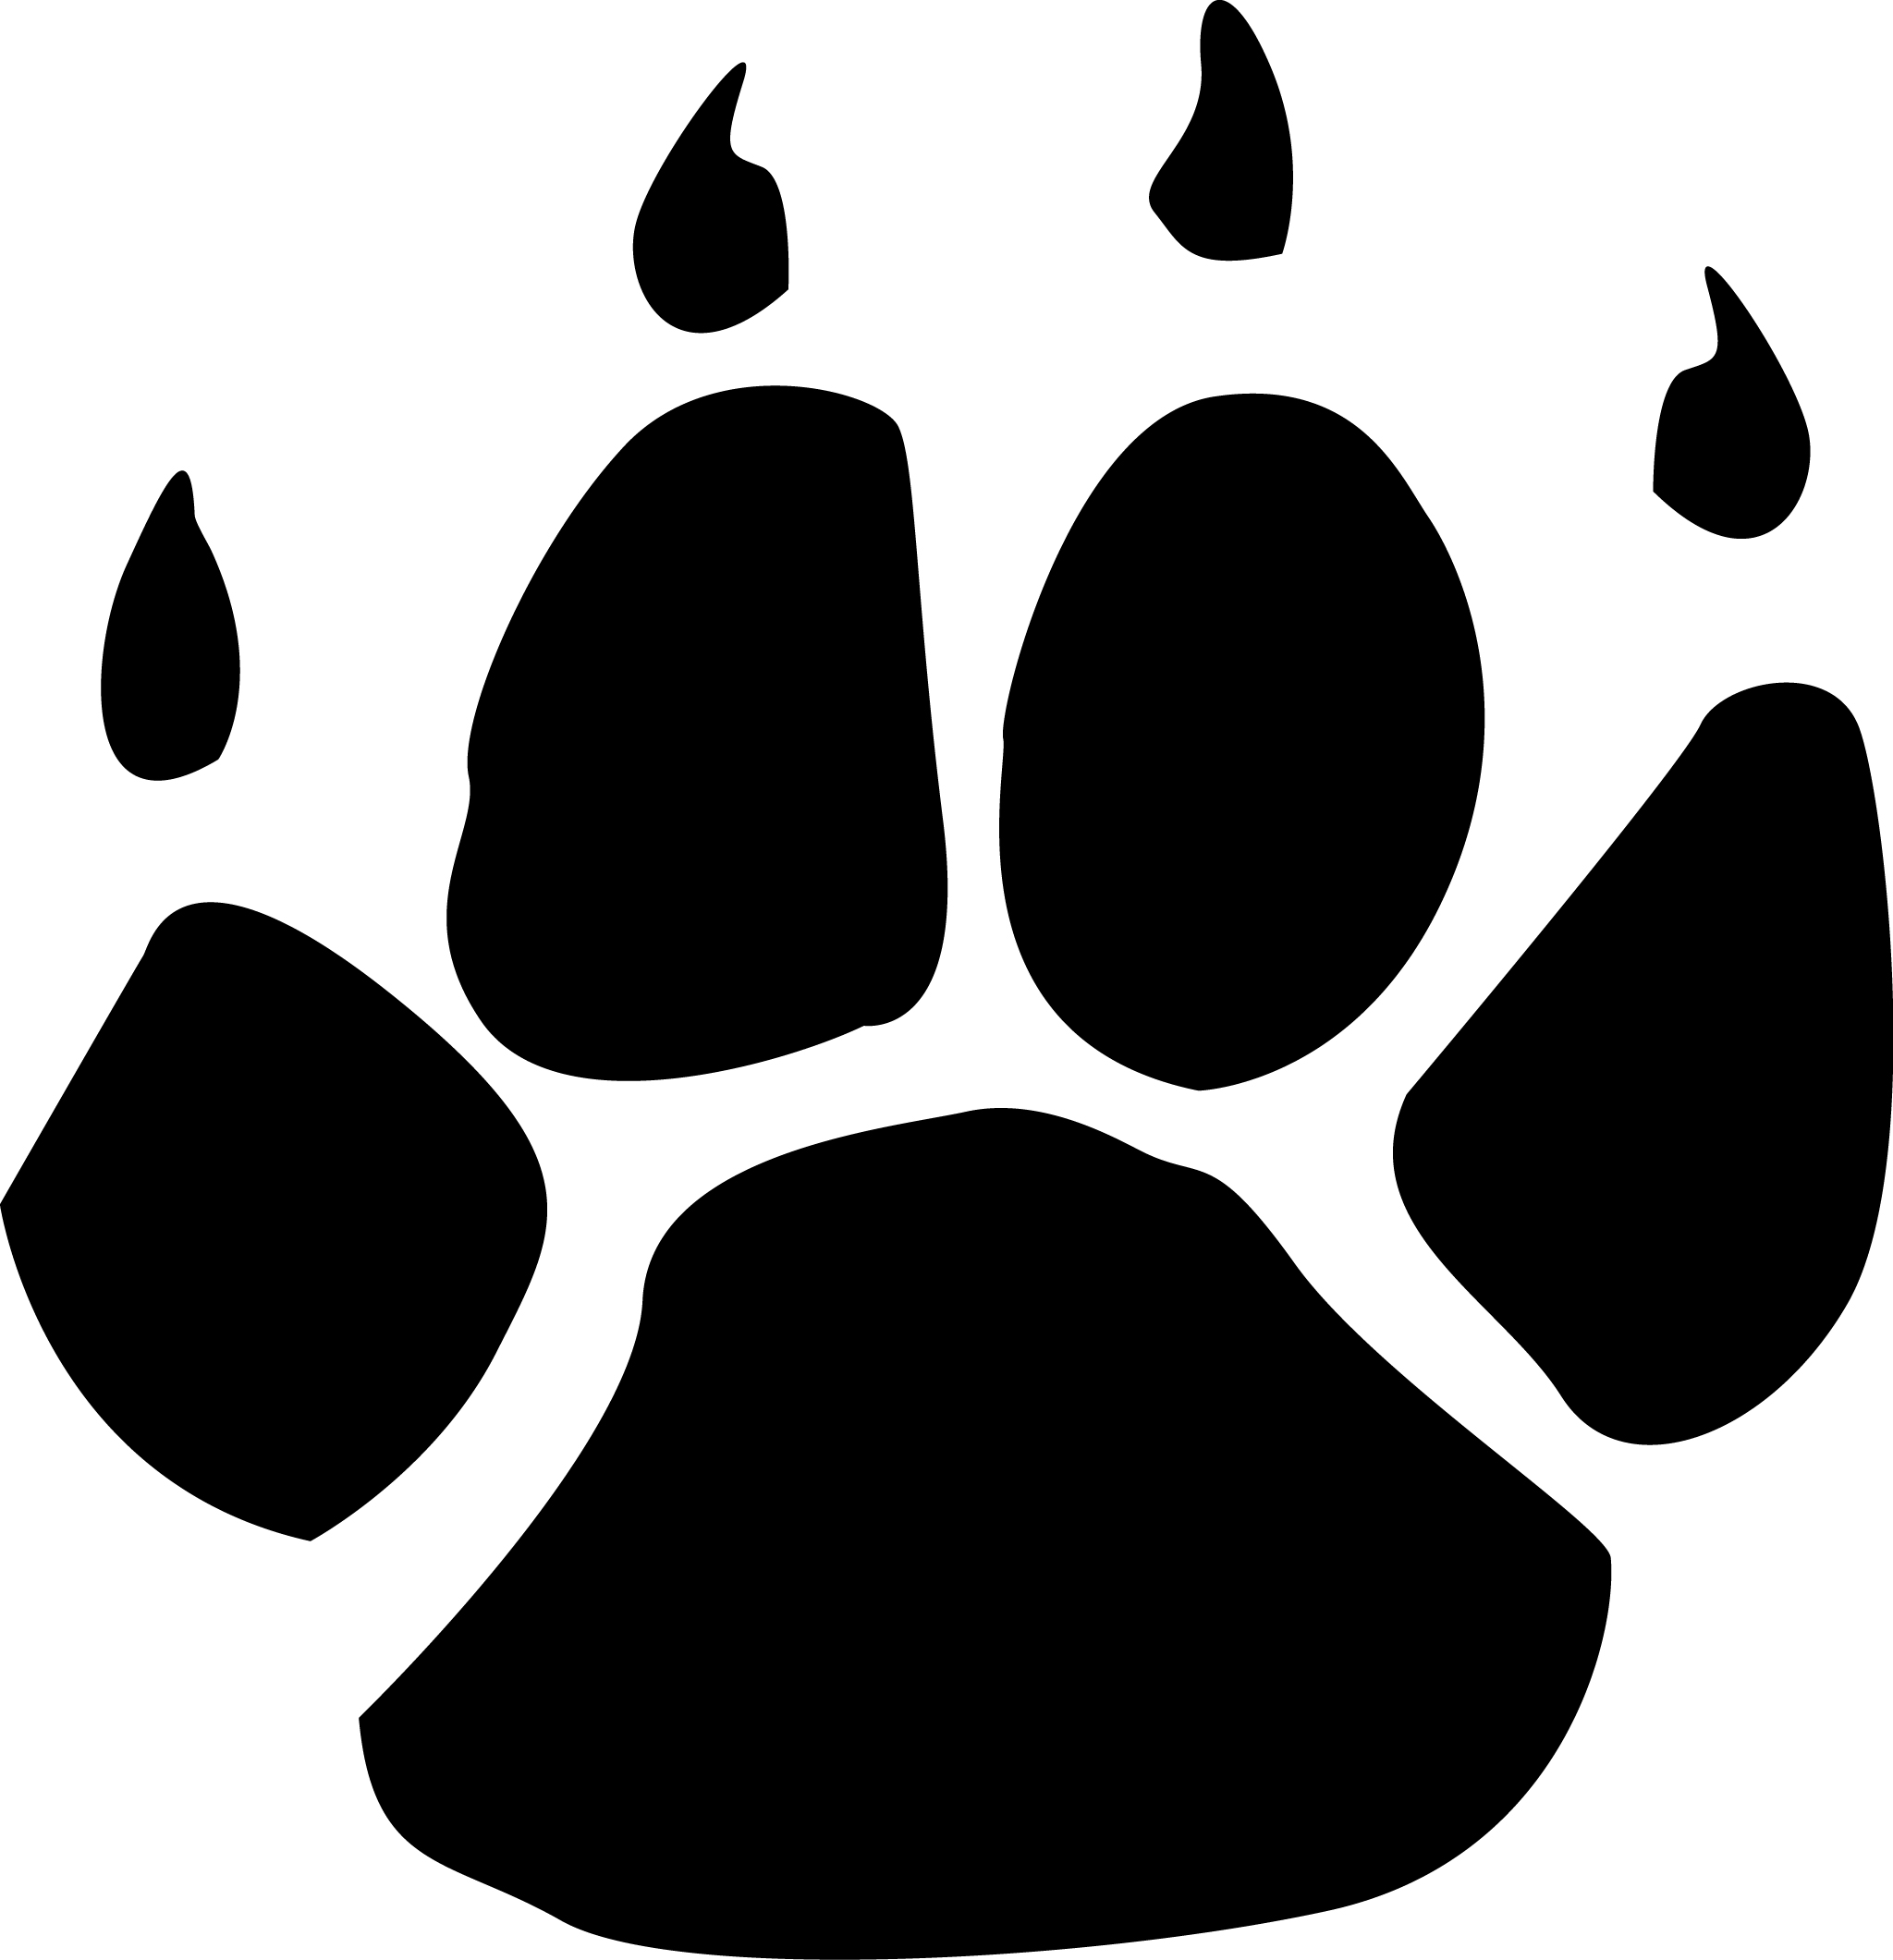 wildcat paw print clipart best Mountain Lion Paw Print Clip Art lion paw print clip art free